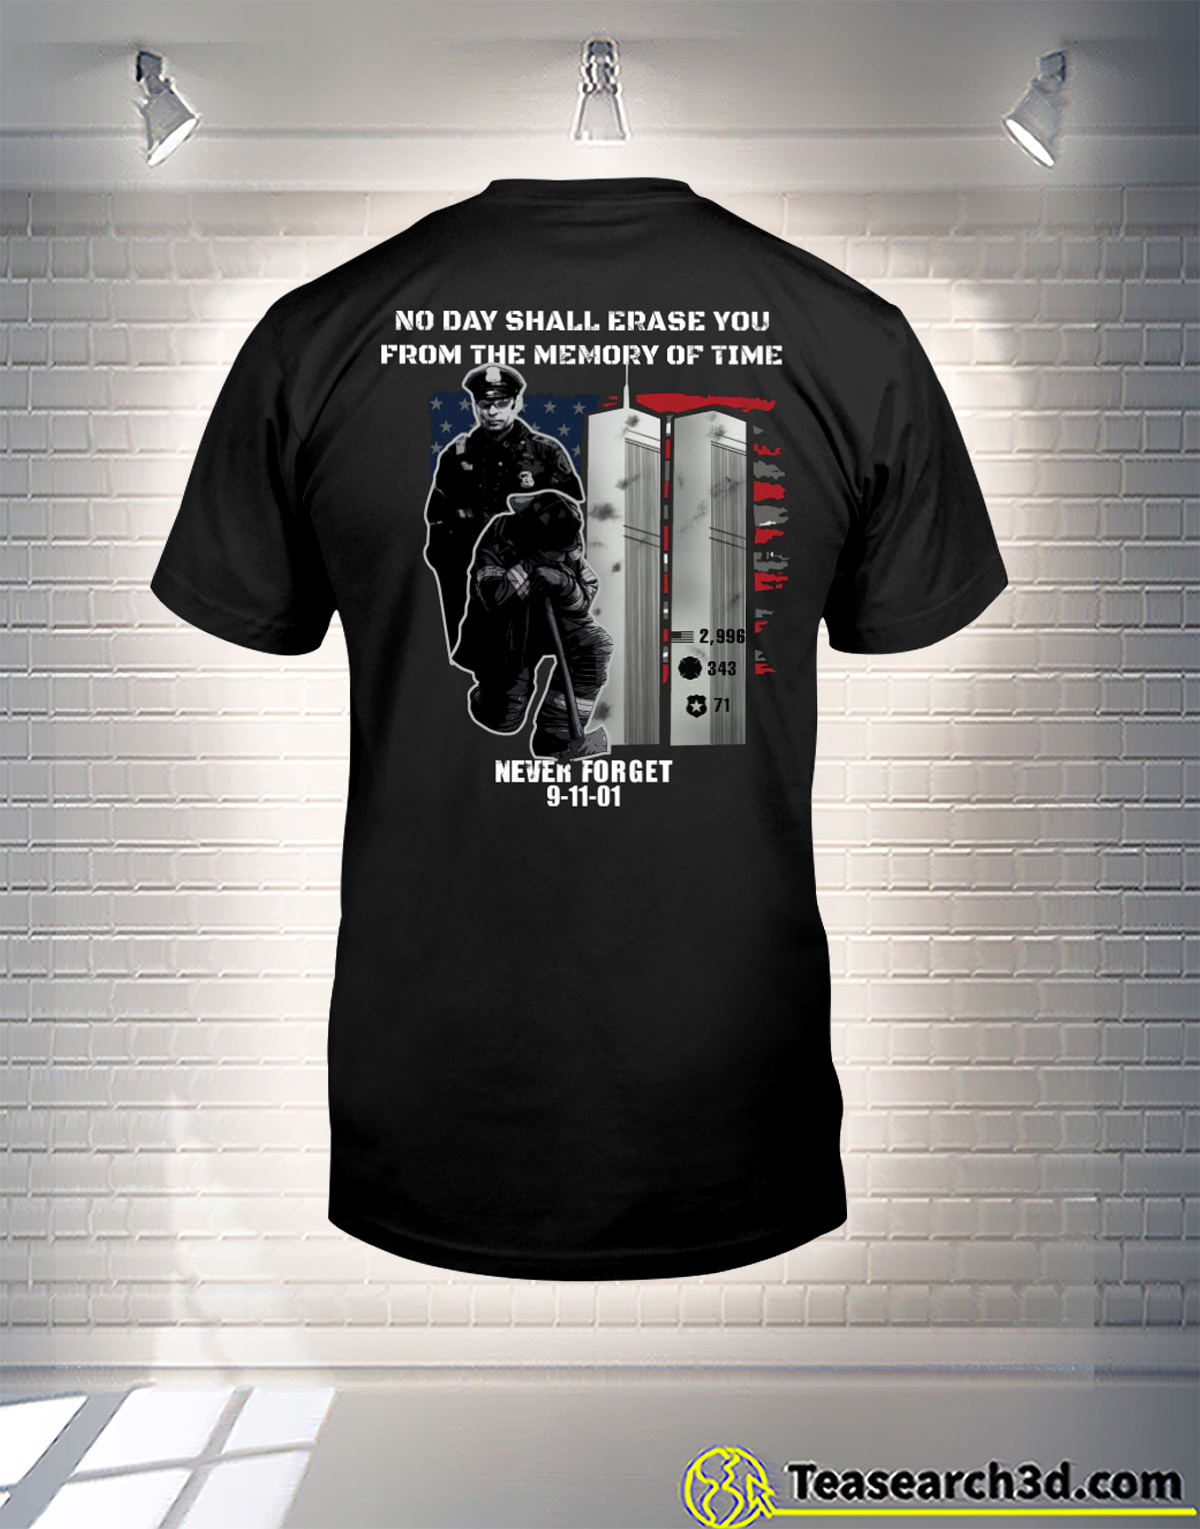 9-11-Never-Forget-no-day-shall-erase-you-from-the-memory-of-time-shirt.jpg August 10, 2021 928 KB 1200 by 1529 pixels Edit Image Delete permanently Alt Text Describe the purpose of the image(opens in a new tab). Leave empty if the image is purely decorative.Title 9-11 Never Forget no day shall erase you from the memory of time shirt